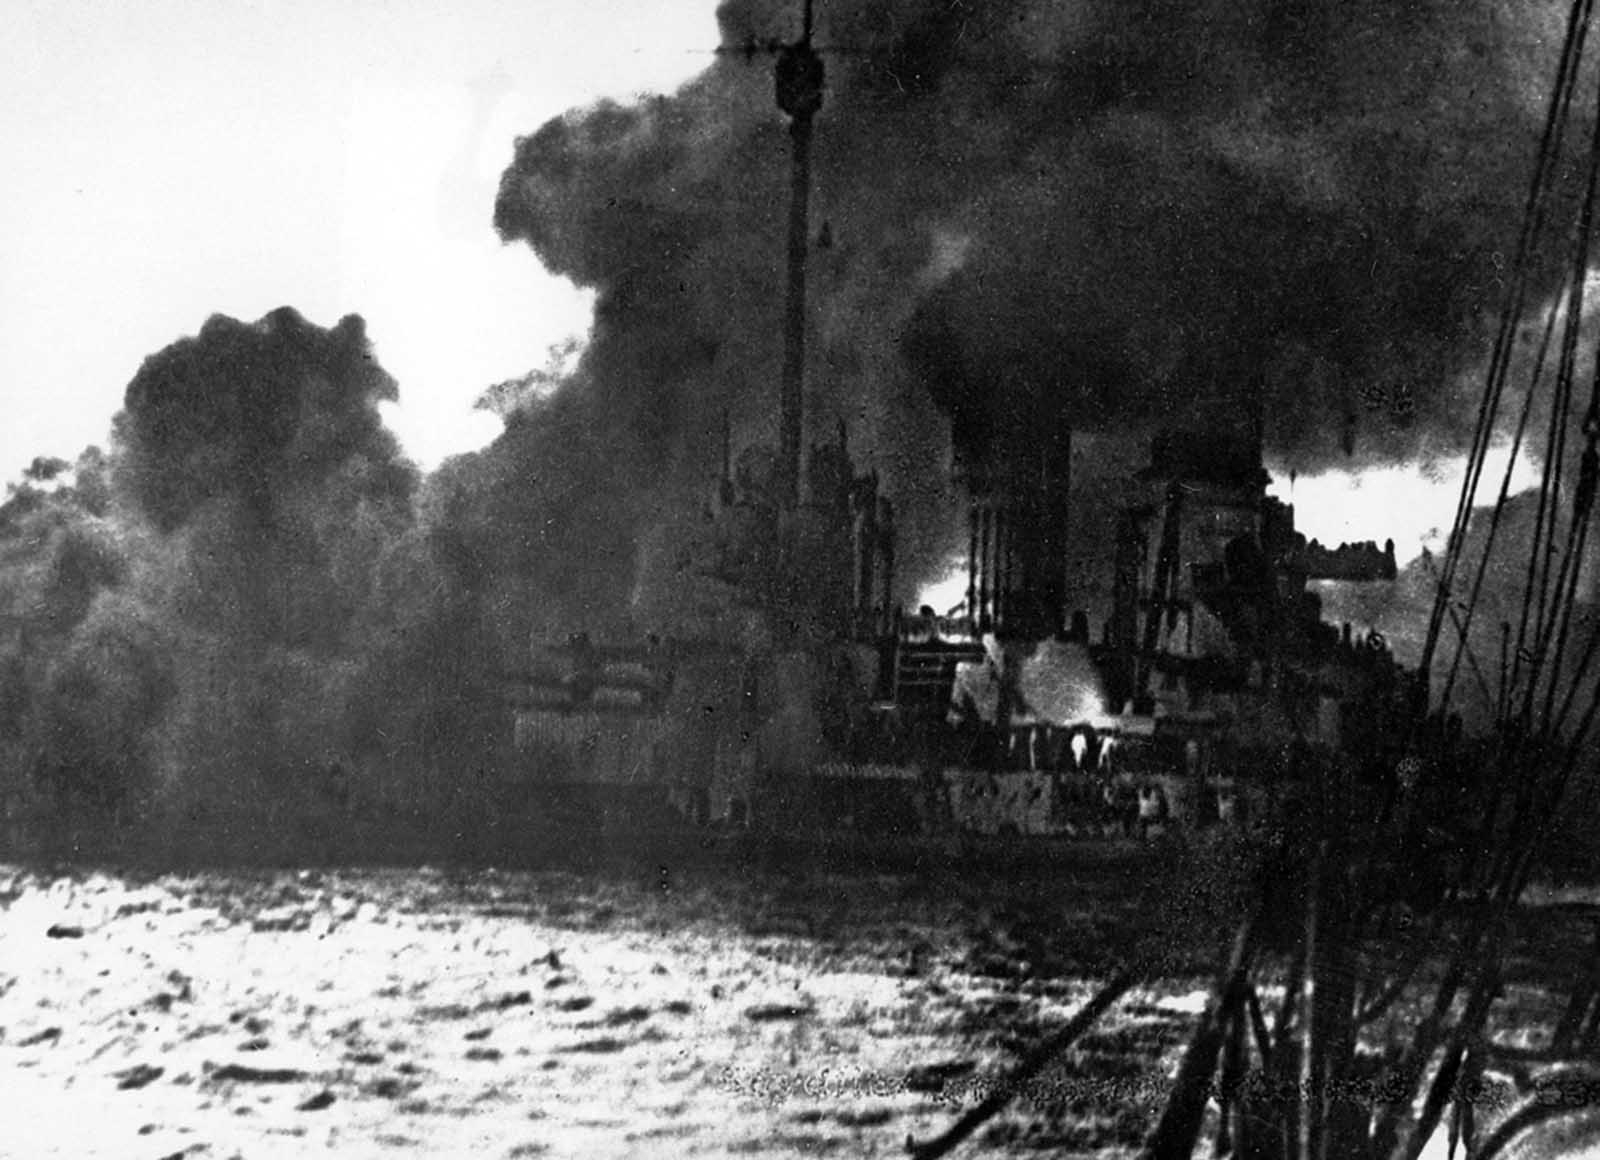 The German battle cruiser Seydlitz burns in the Battle of Jutland, May 31, 1916. Seydlitz was the flagship of German Vice Admiral von Hipper, who left the ship during the battle. The battle cruiser reached the port of Wilhelmshaven on own power.